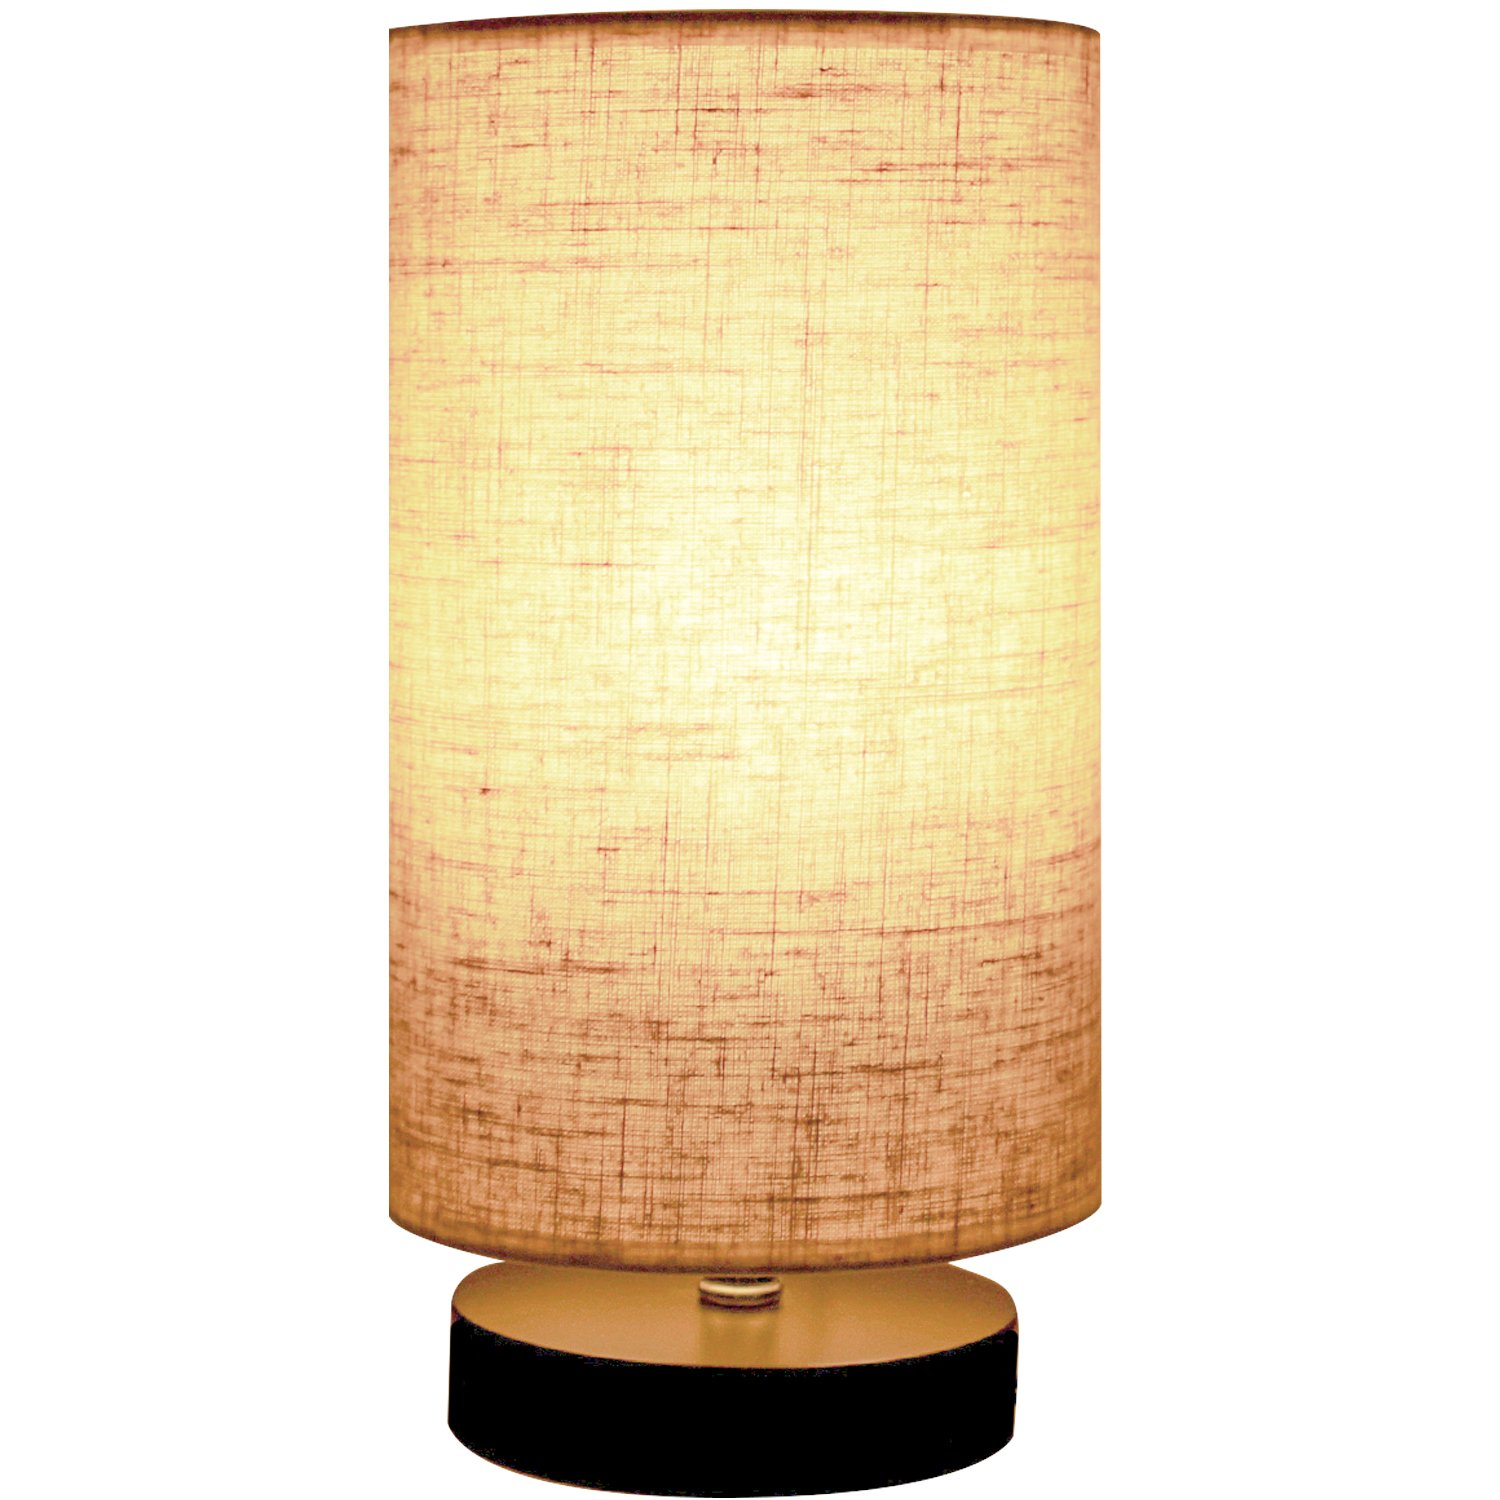 Minerva Minimalist Solid Wood Table Lamp, Bedside Desk Lamps, Nightstand Lamp with Linen Fabric Shade for Bedroom, Living Room (Cylinder)